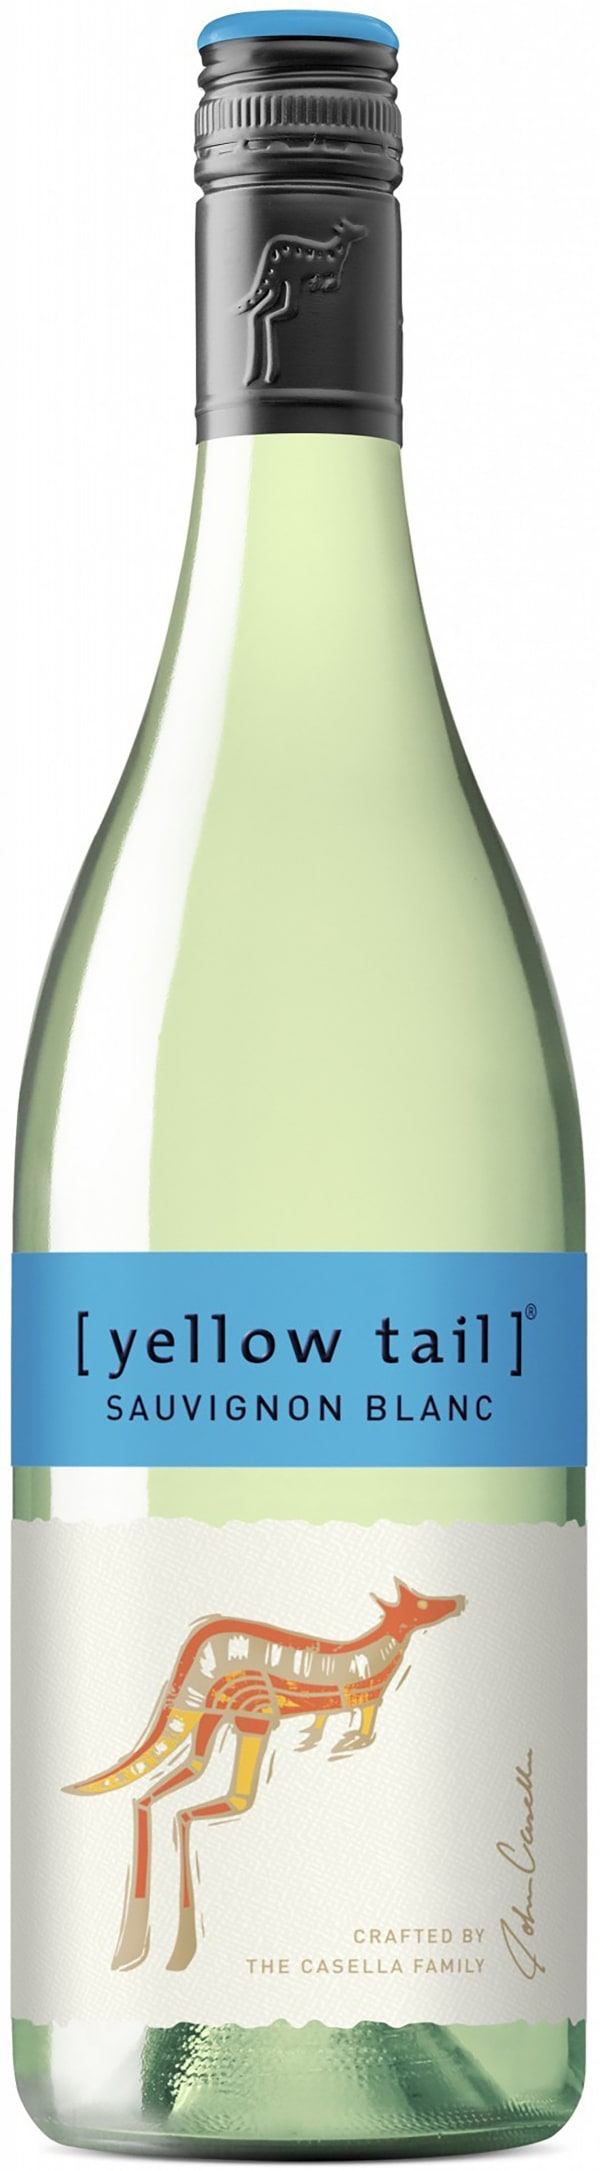 Yellow Tail Sauvignon Blanc 2015